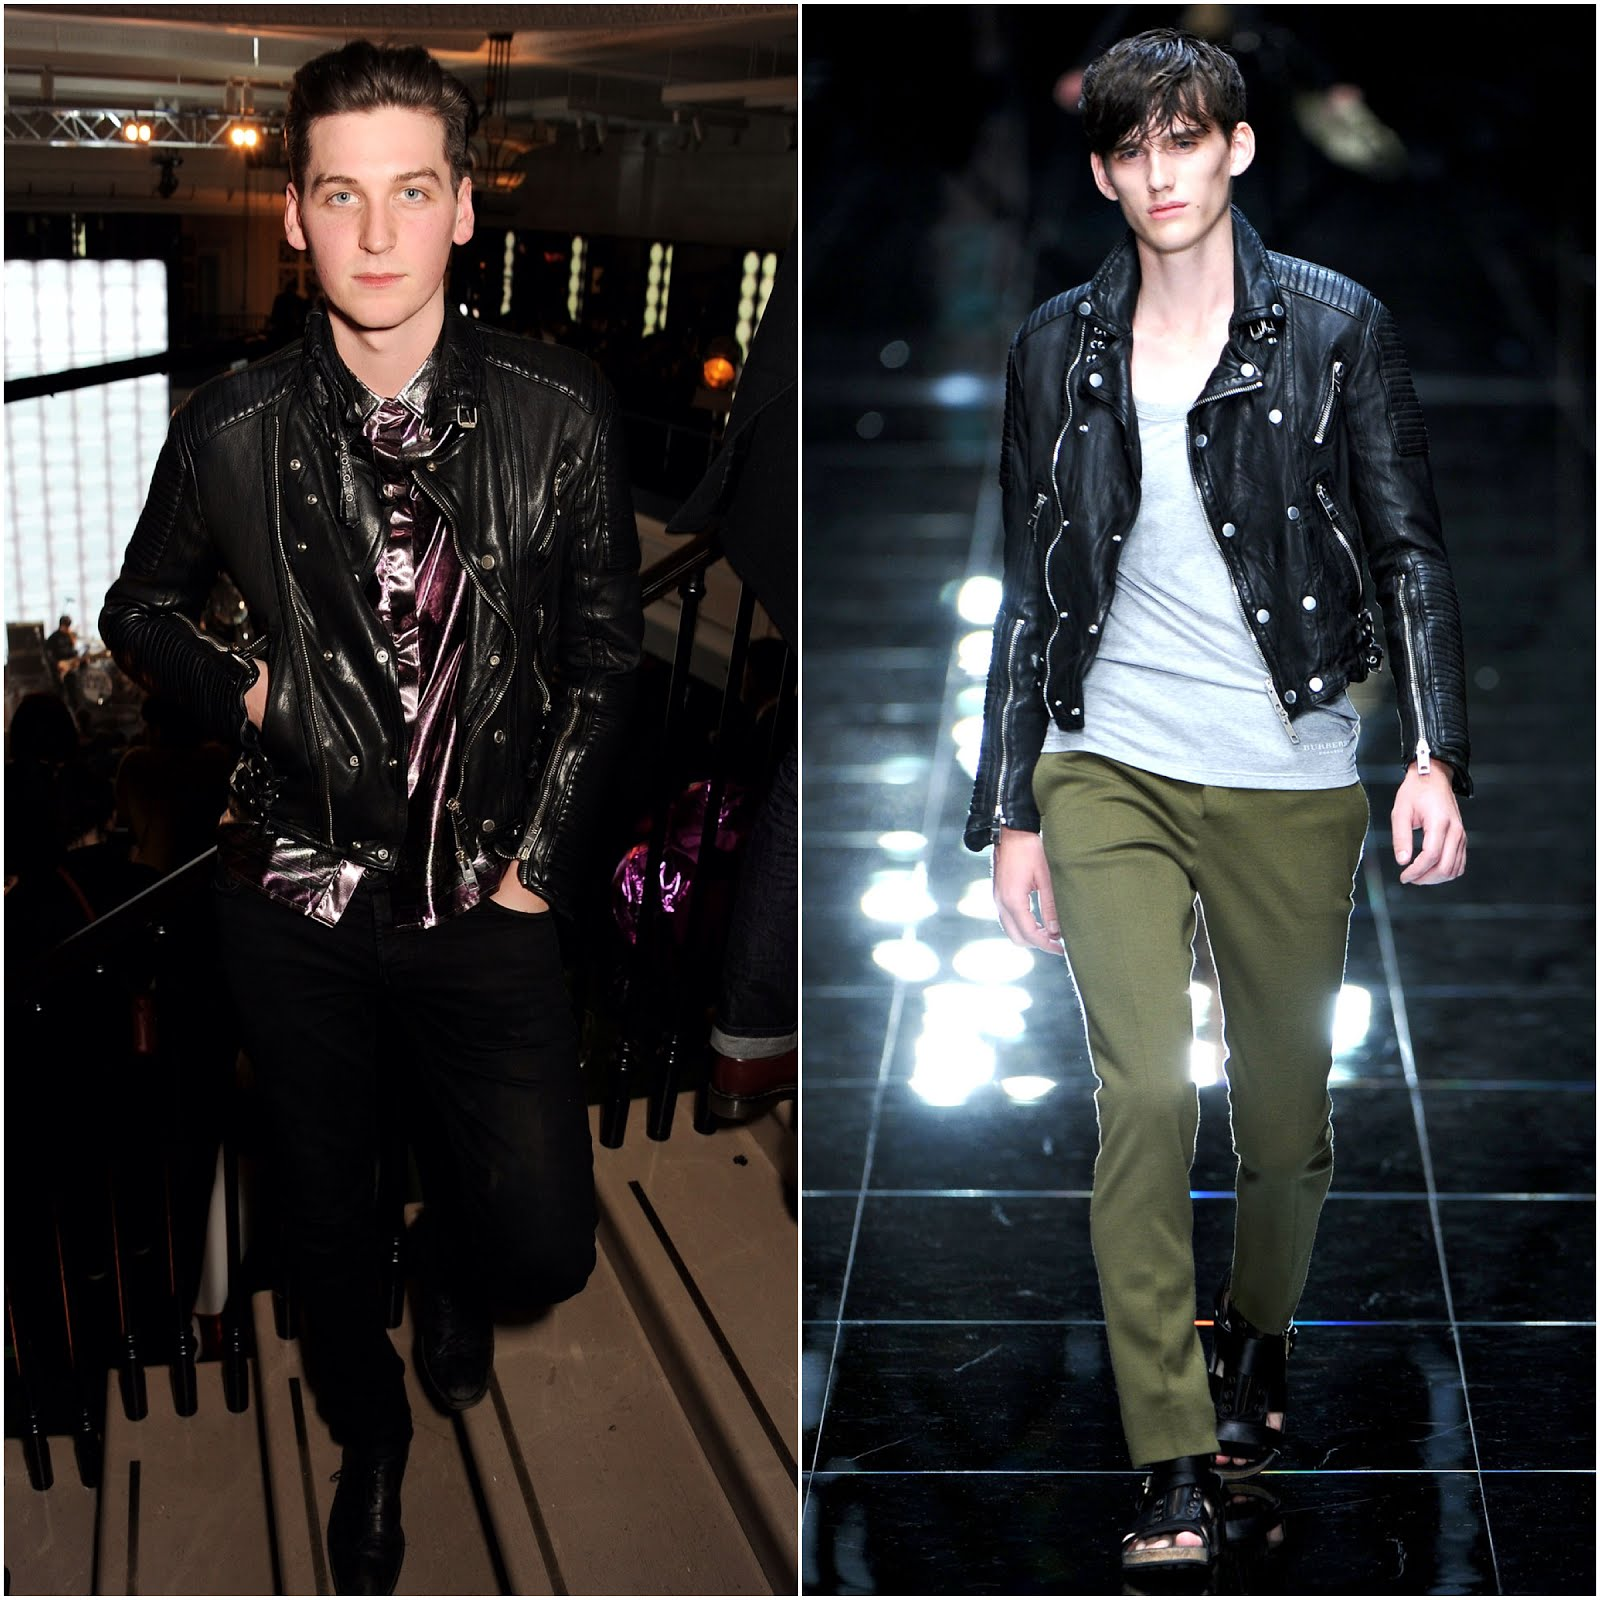 00O00 Menswear Blog George Craig One Night Only in Burberry Prorsum Spring Summer 2011 - Jake Bugg Burberry Acoustic at 121 Regent Street London